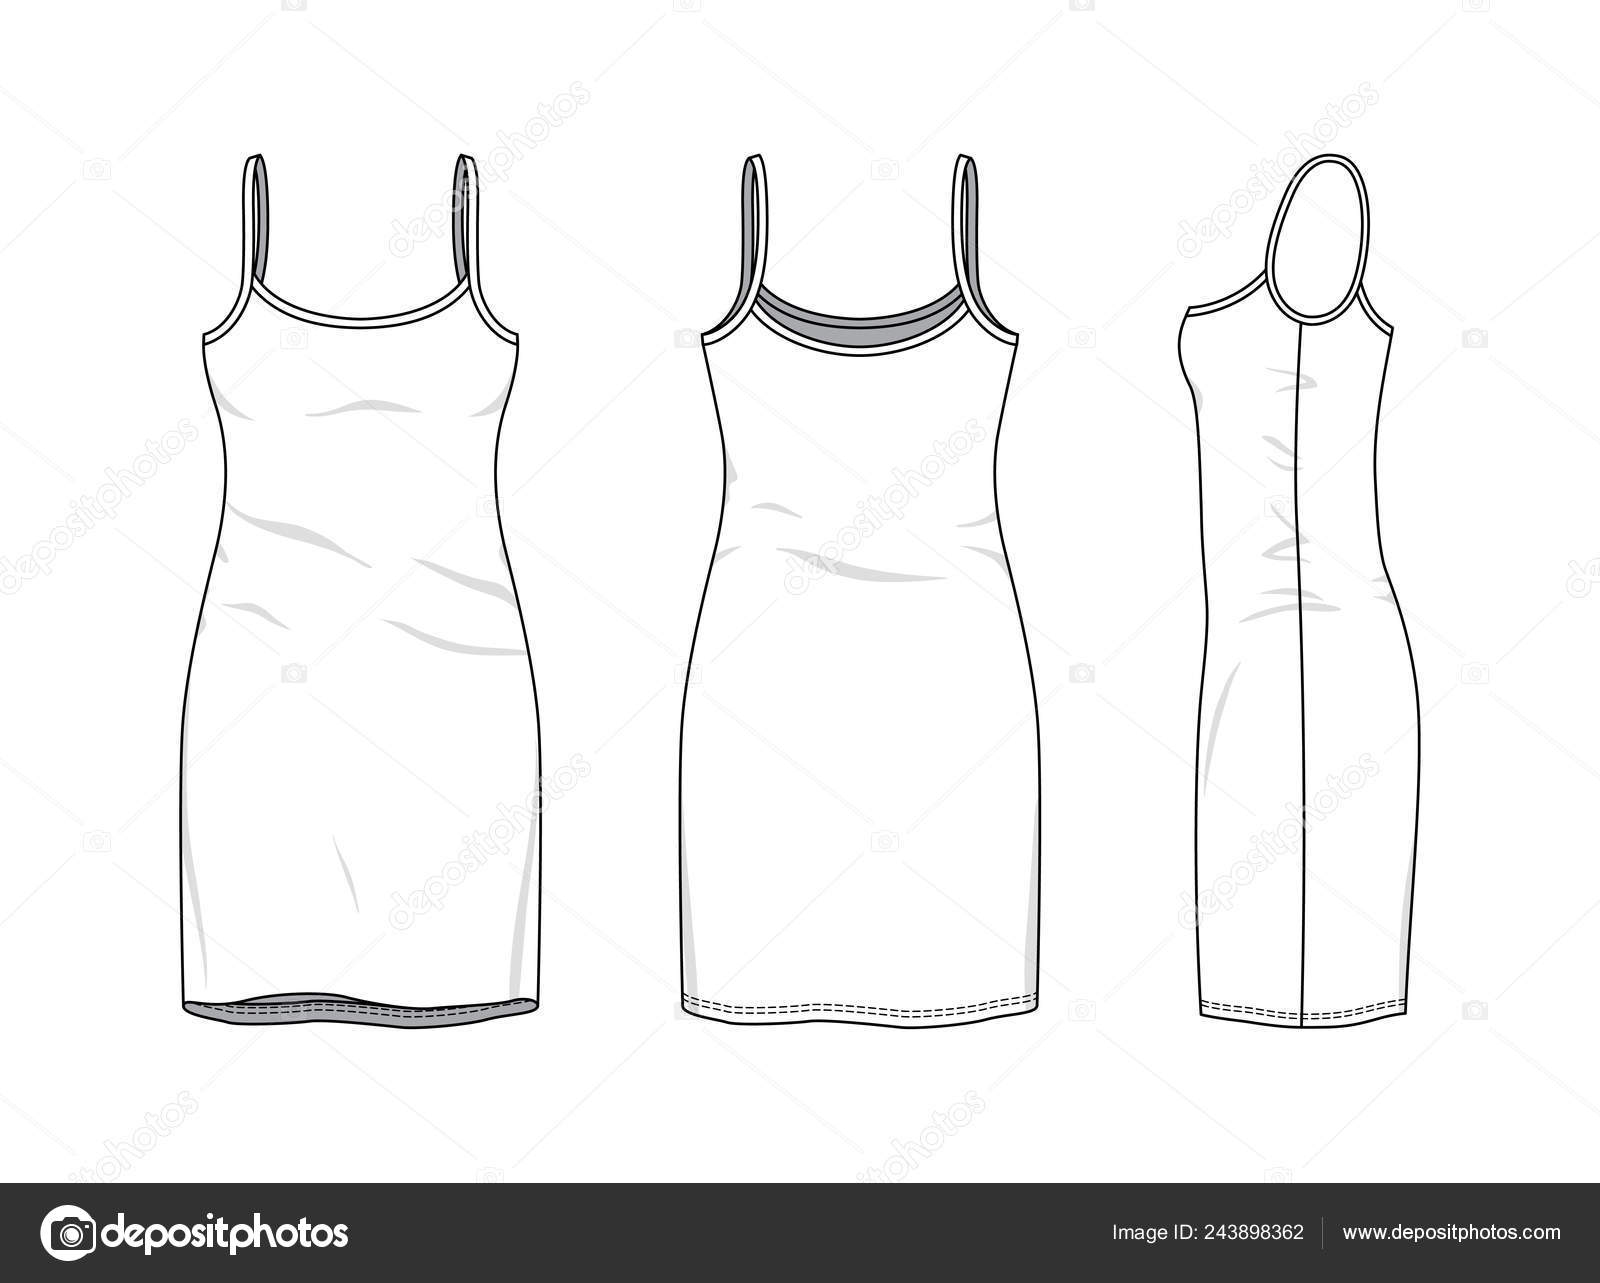 Blank Dress Design Templates Blank Clothing Templates Stock Vector C Aunaauna2012 243898362